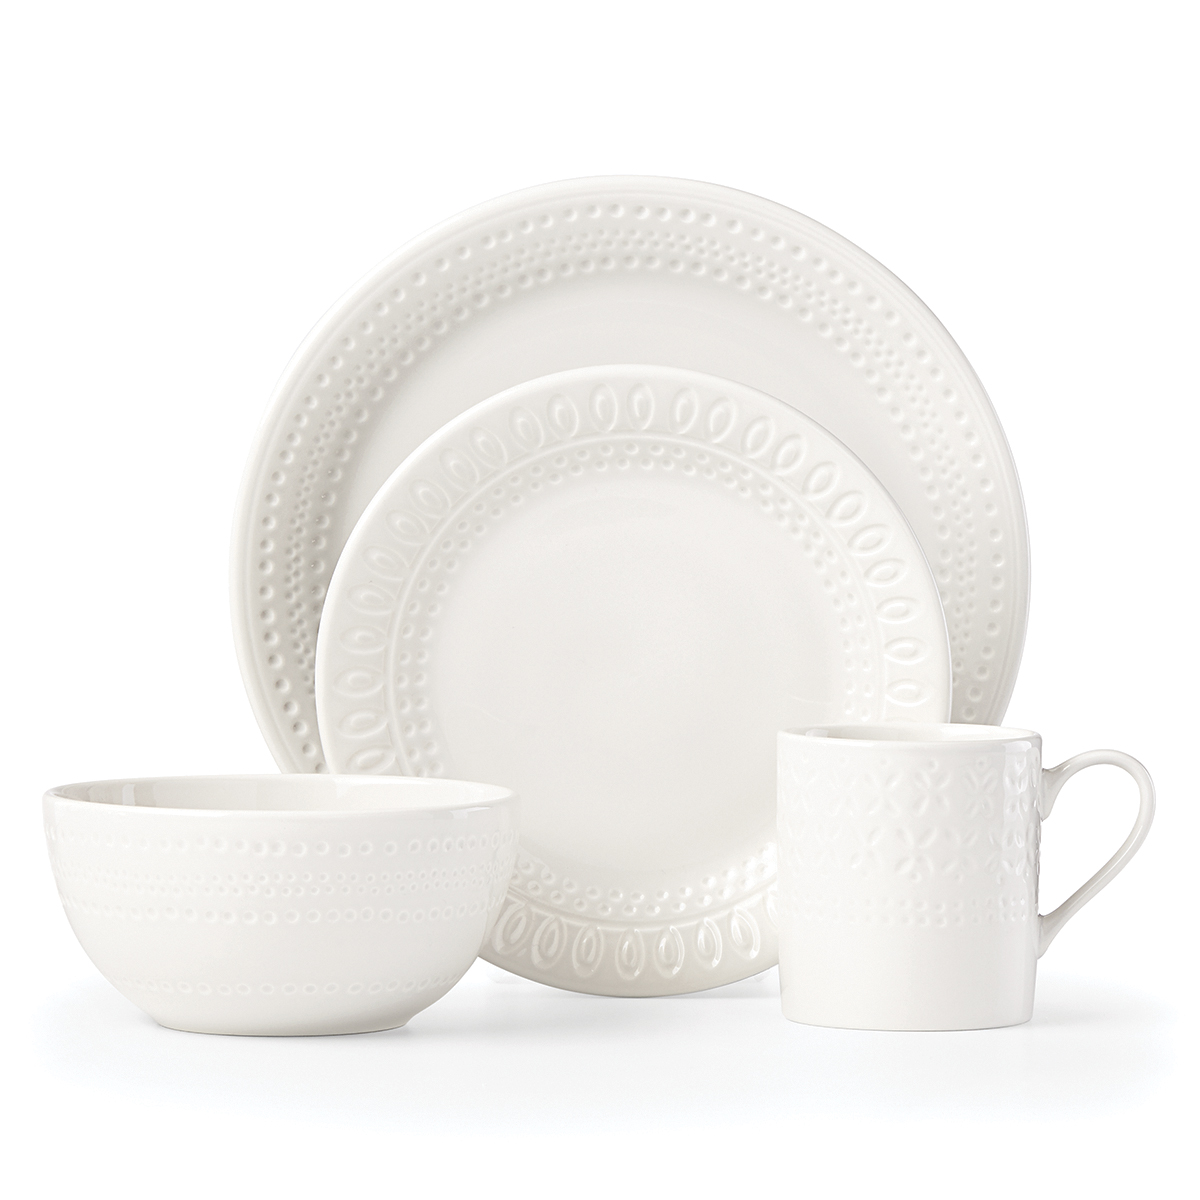 Kate Spade China by Lenox, Stoneware Willow Drive Cream 4pc Place Setting